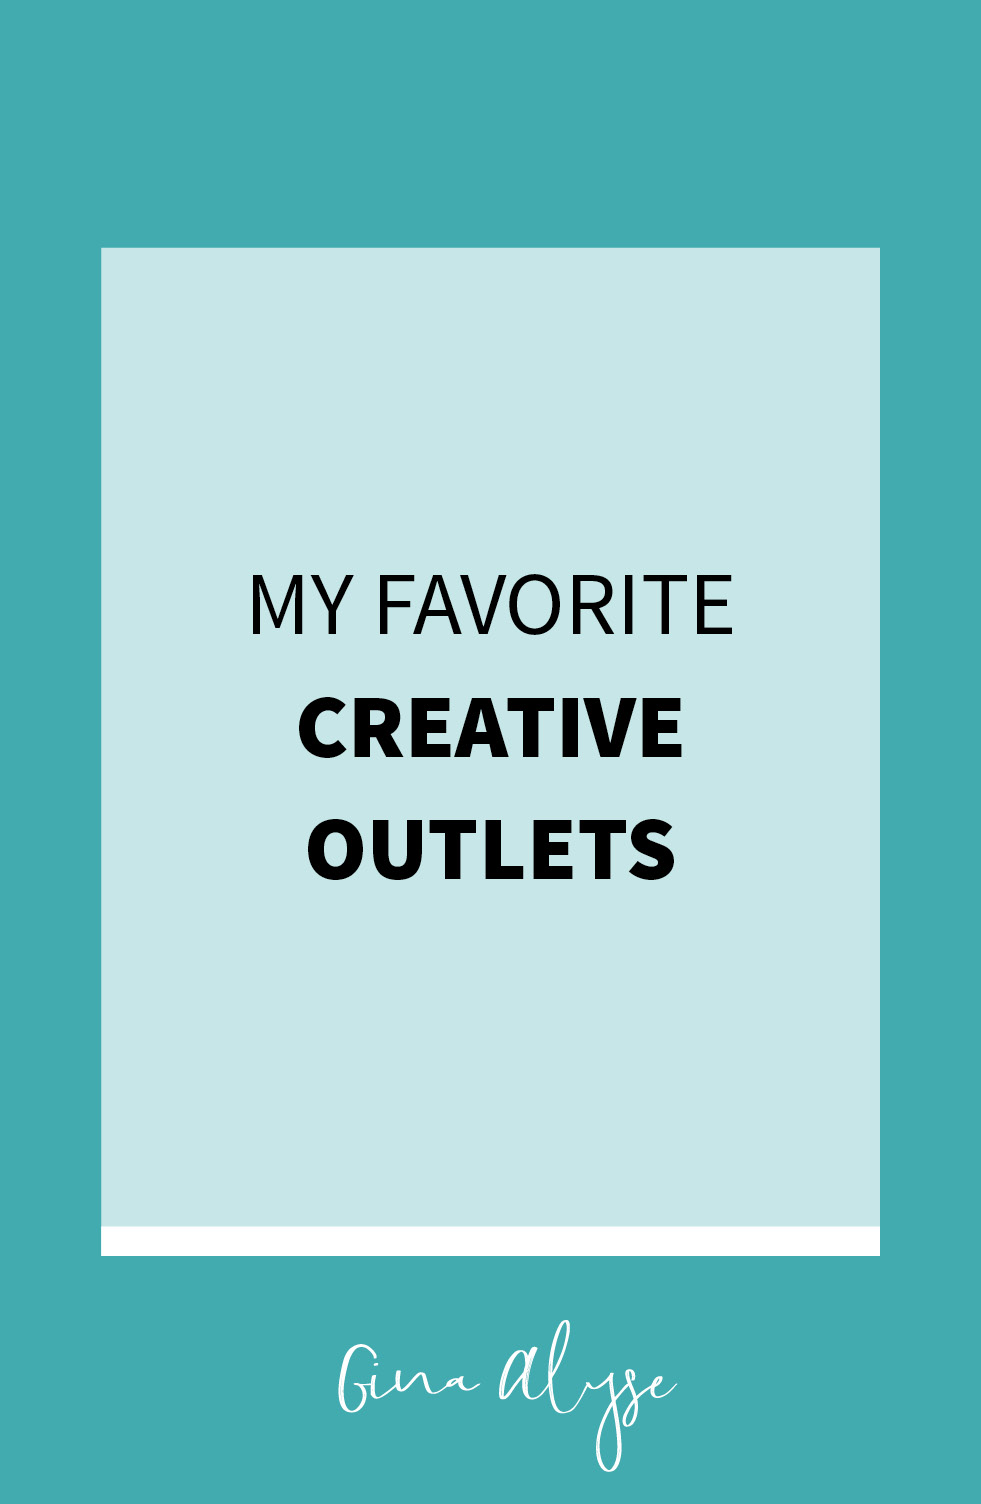 My Favorite Creative Outlets - Gina Alyse